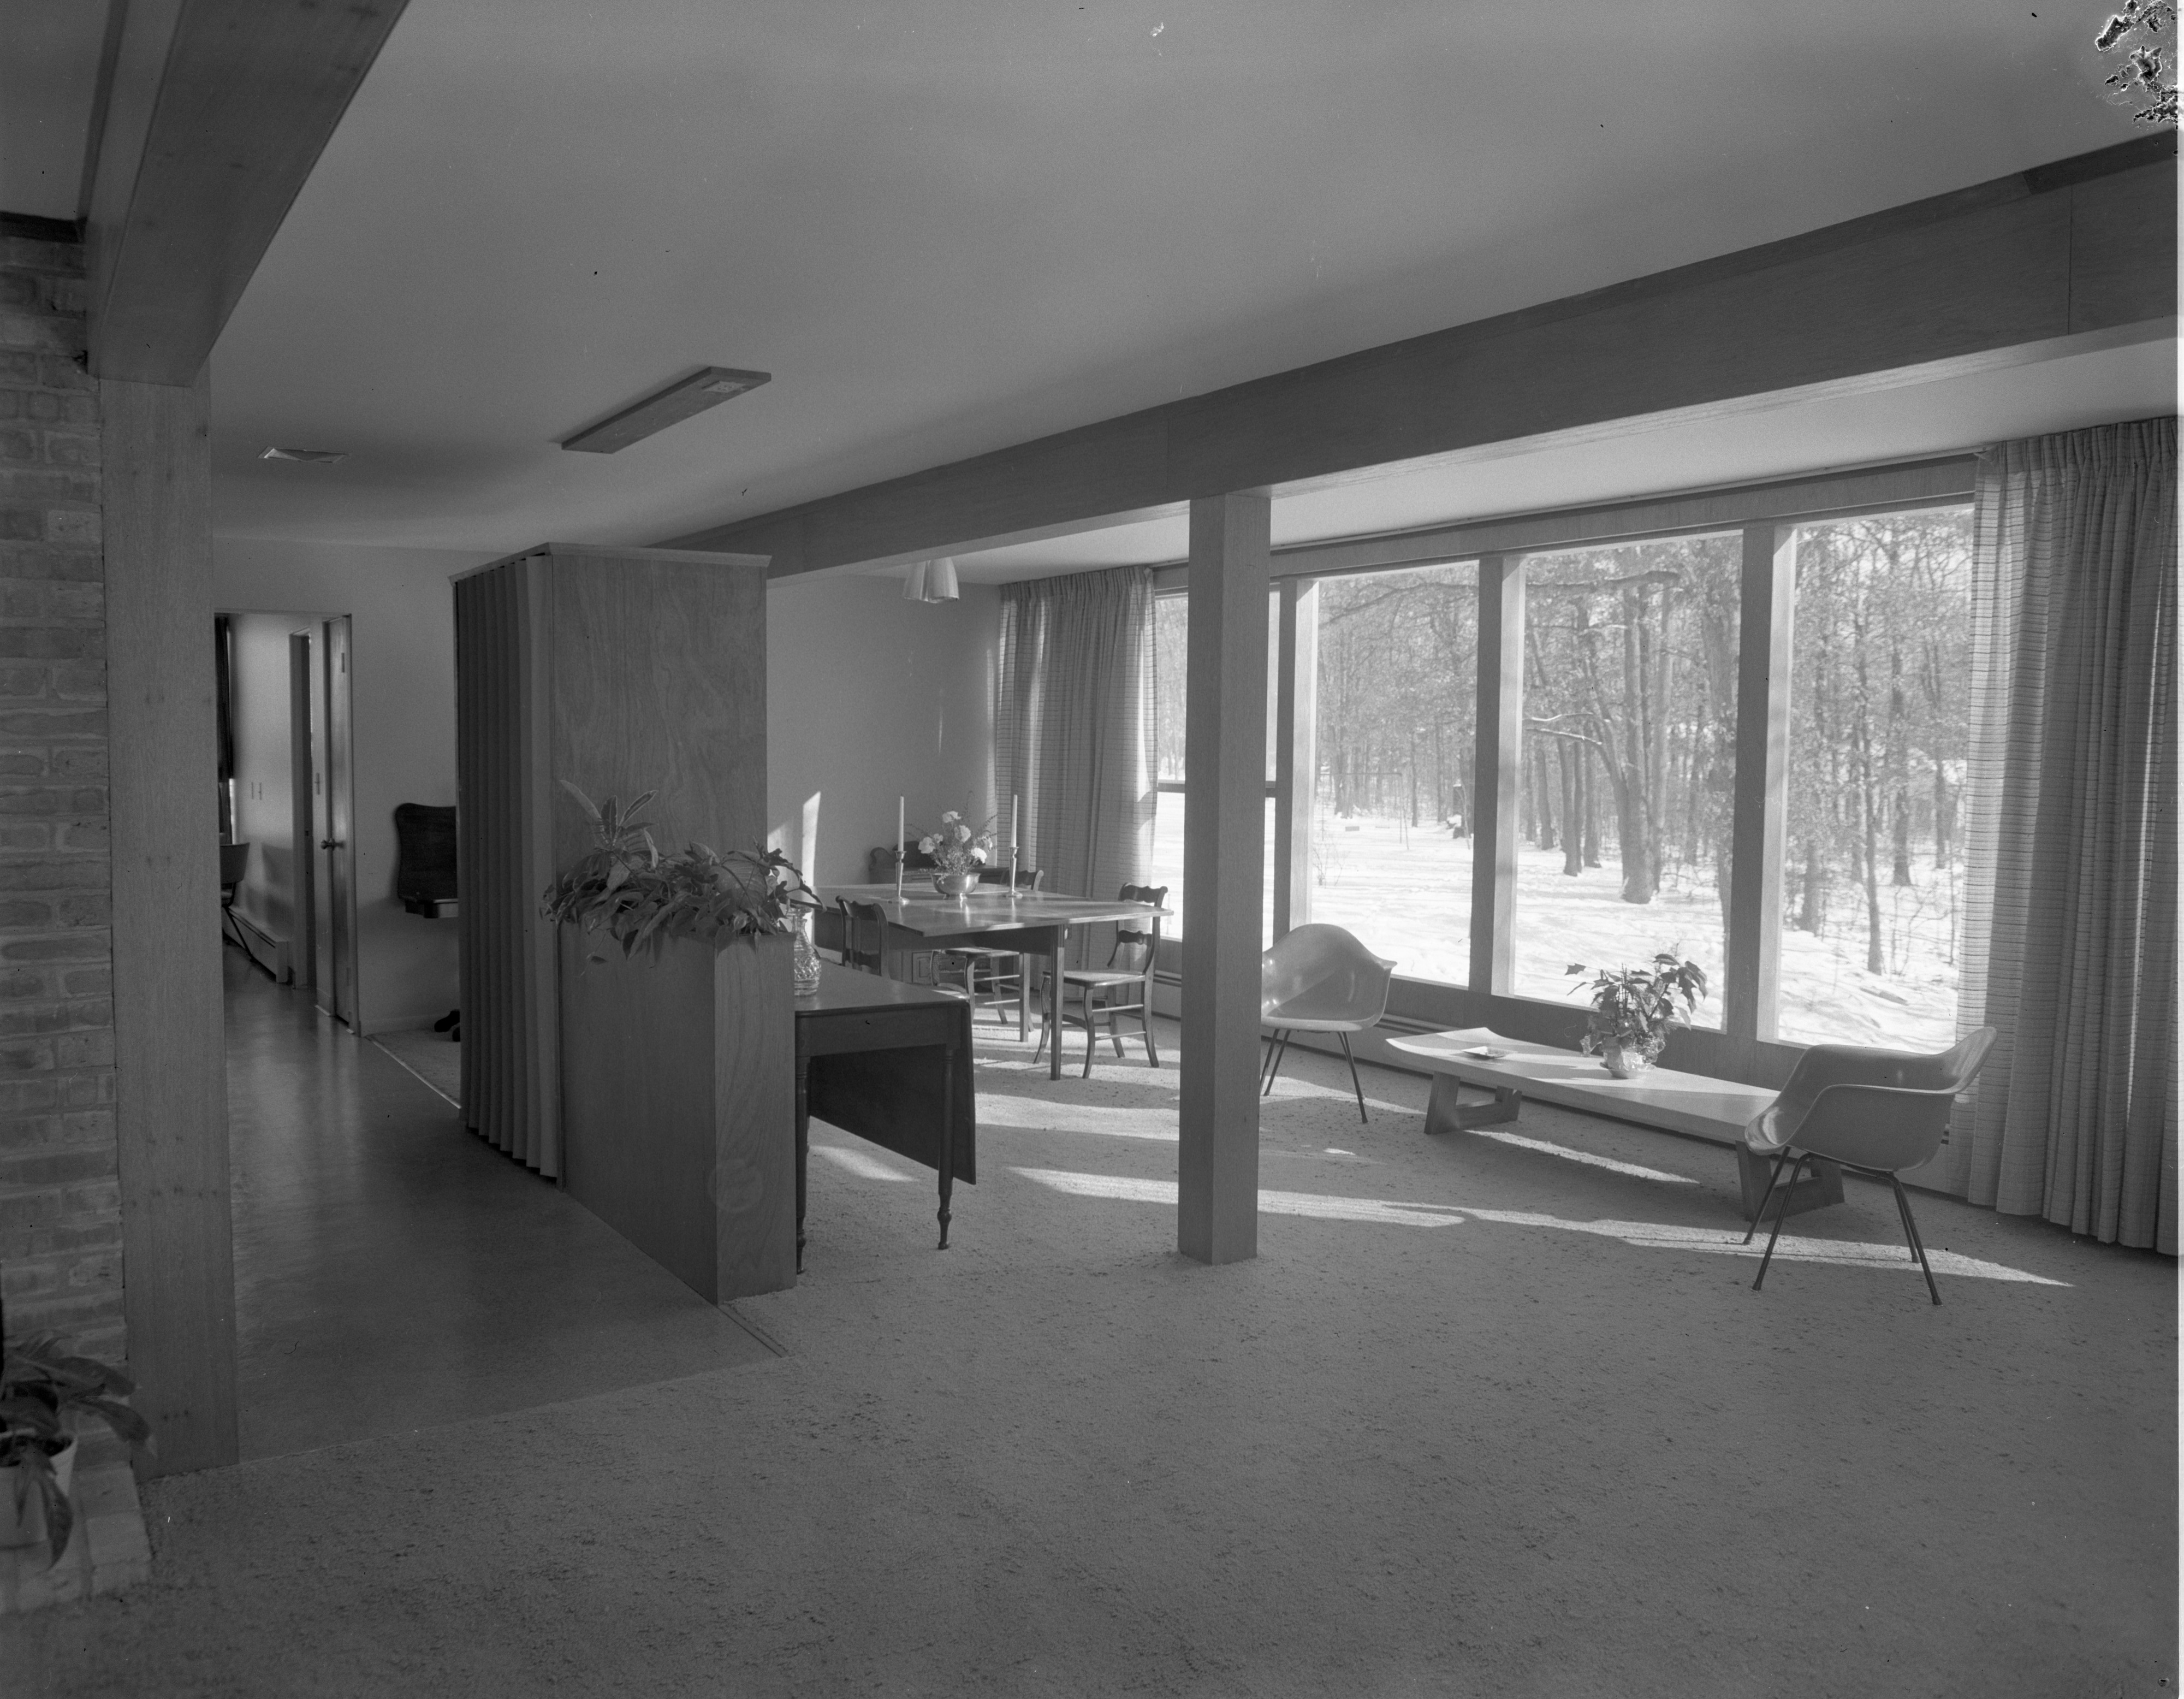 Living-Dining Room - 16 Heatheridge, January 1956 image